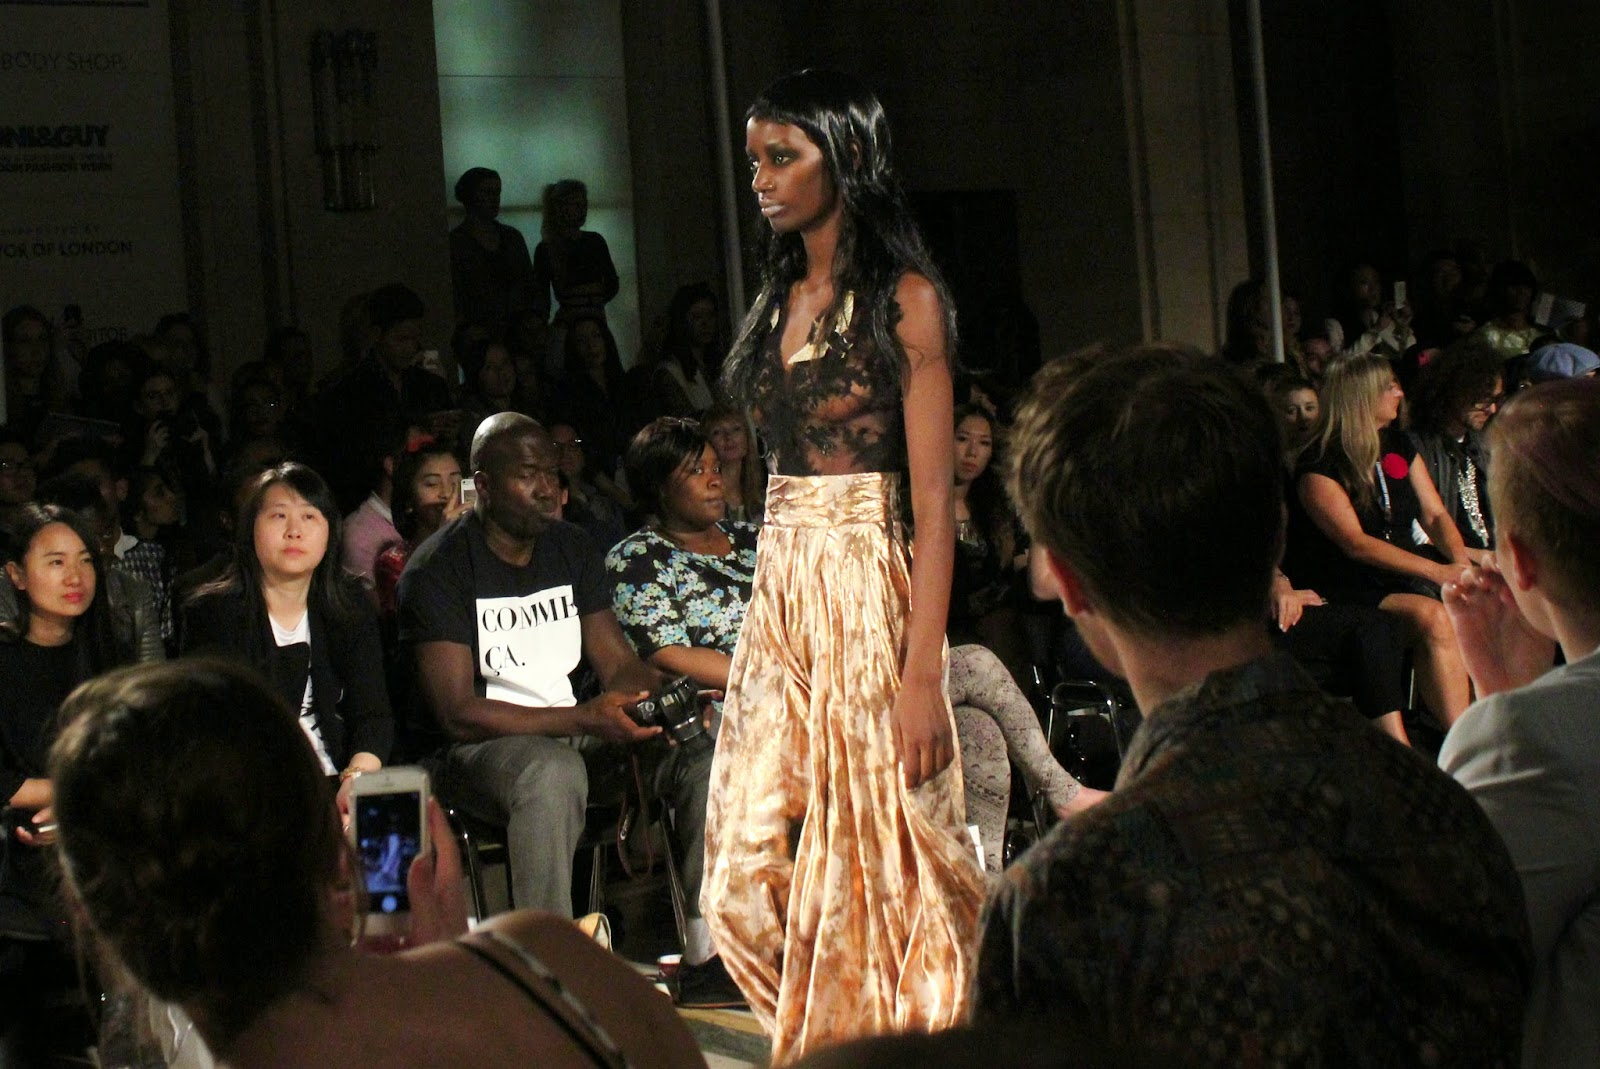 london-fashion-week-2014-lfw-spring-summer-2015-blogger-fashion-Dora-Abodi-catwalk-models-freemasons hall-fashion-scout-lace-top-trousers-maxi-skirt